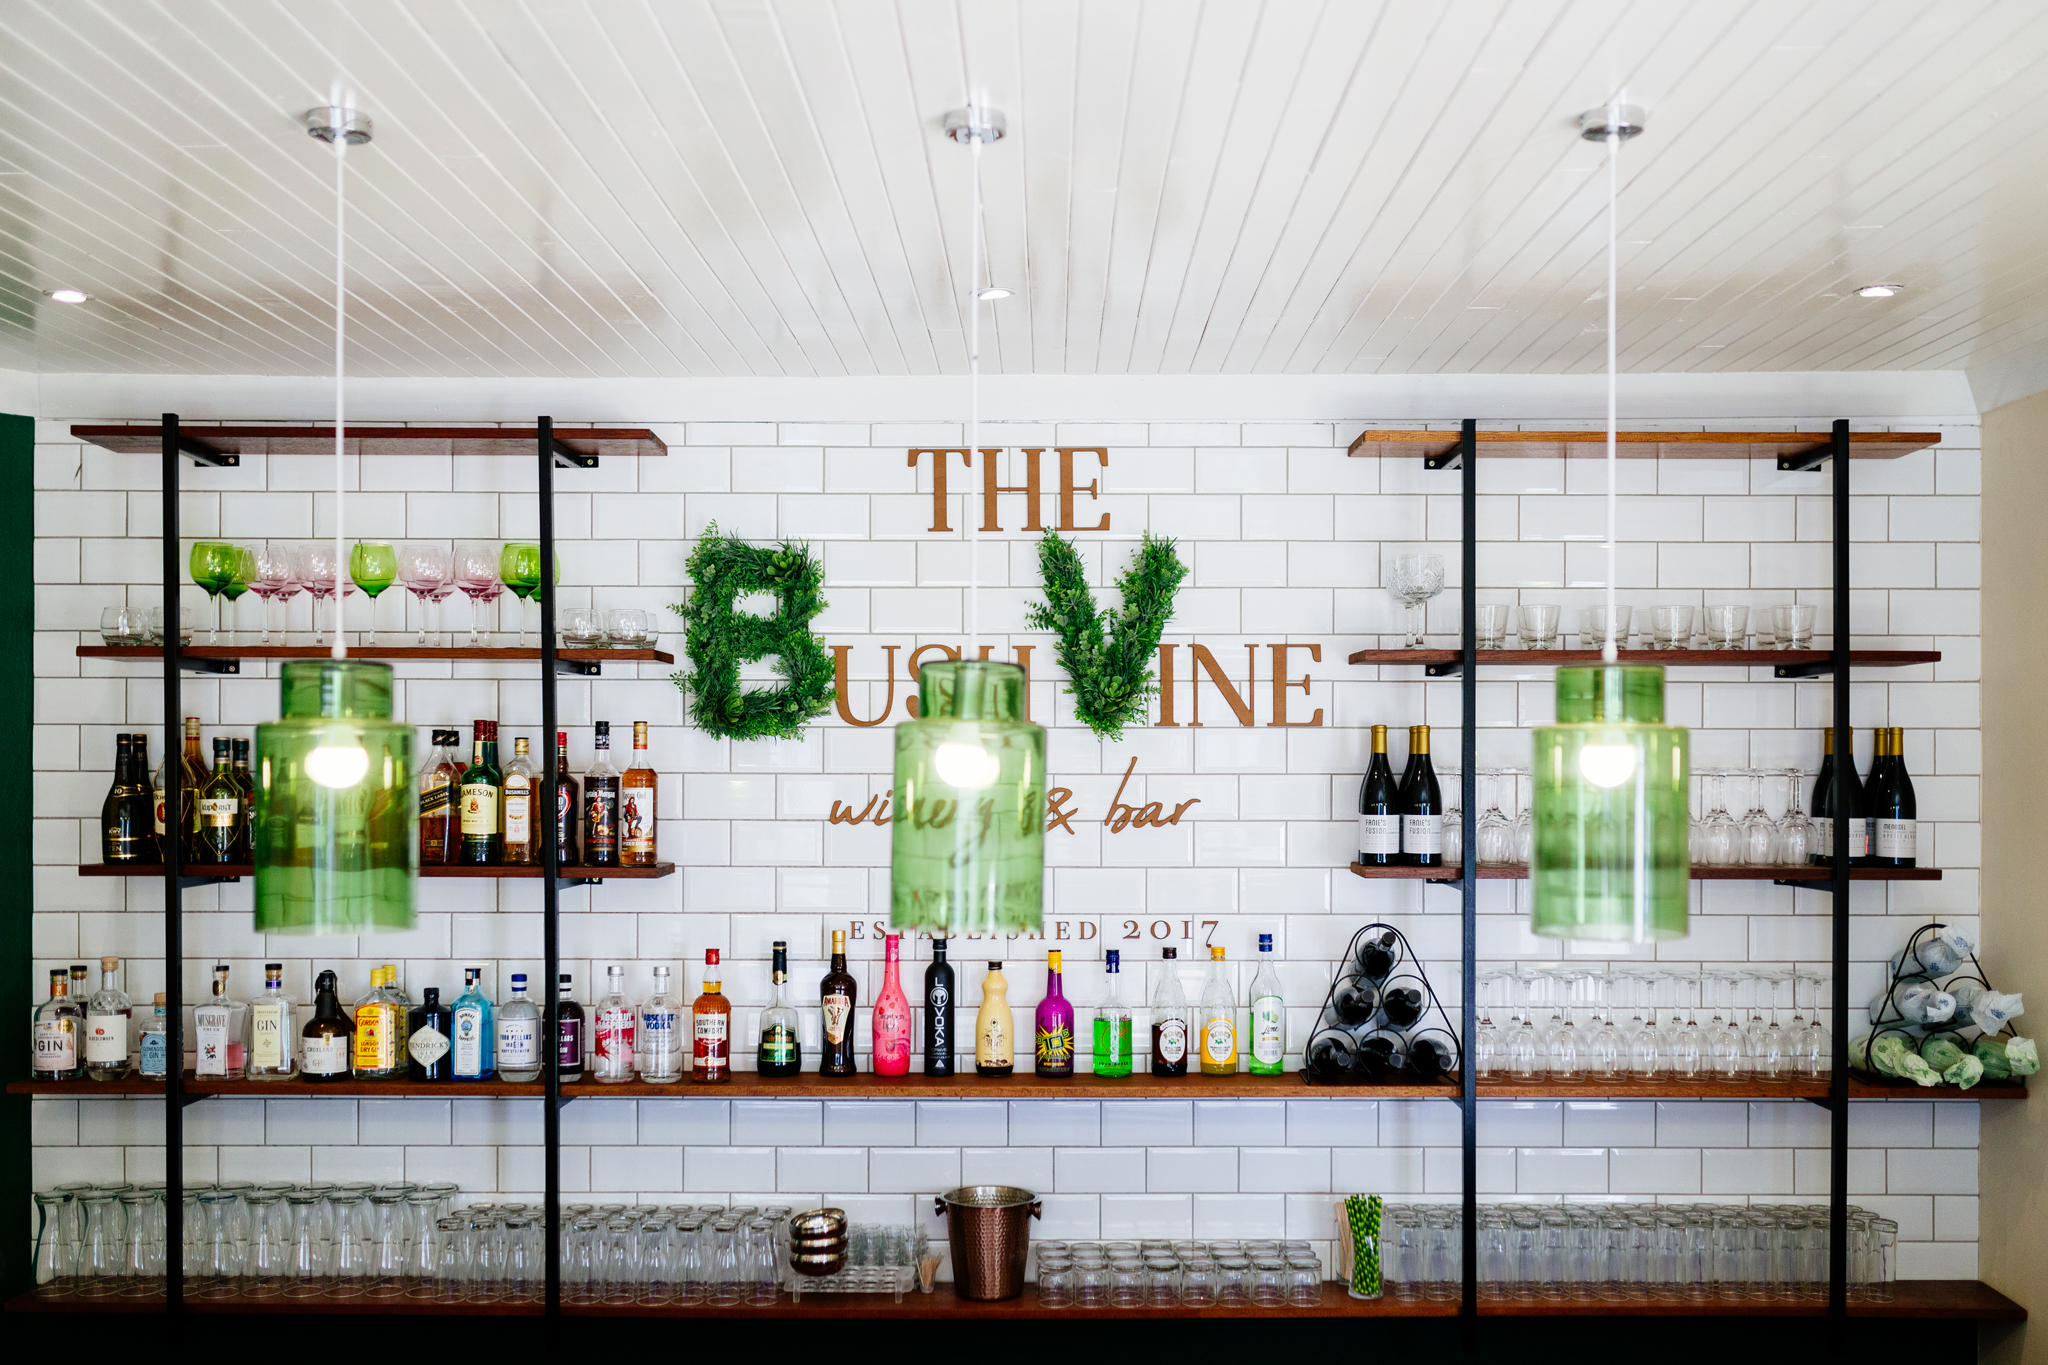 Bush Vine Winery & Bar